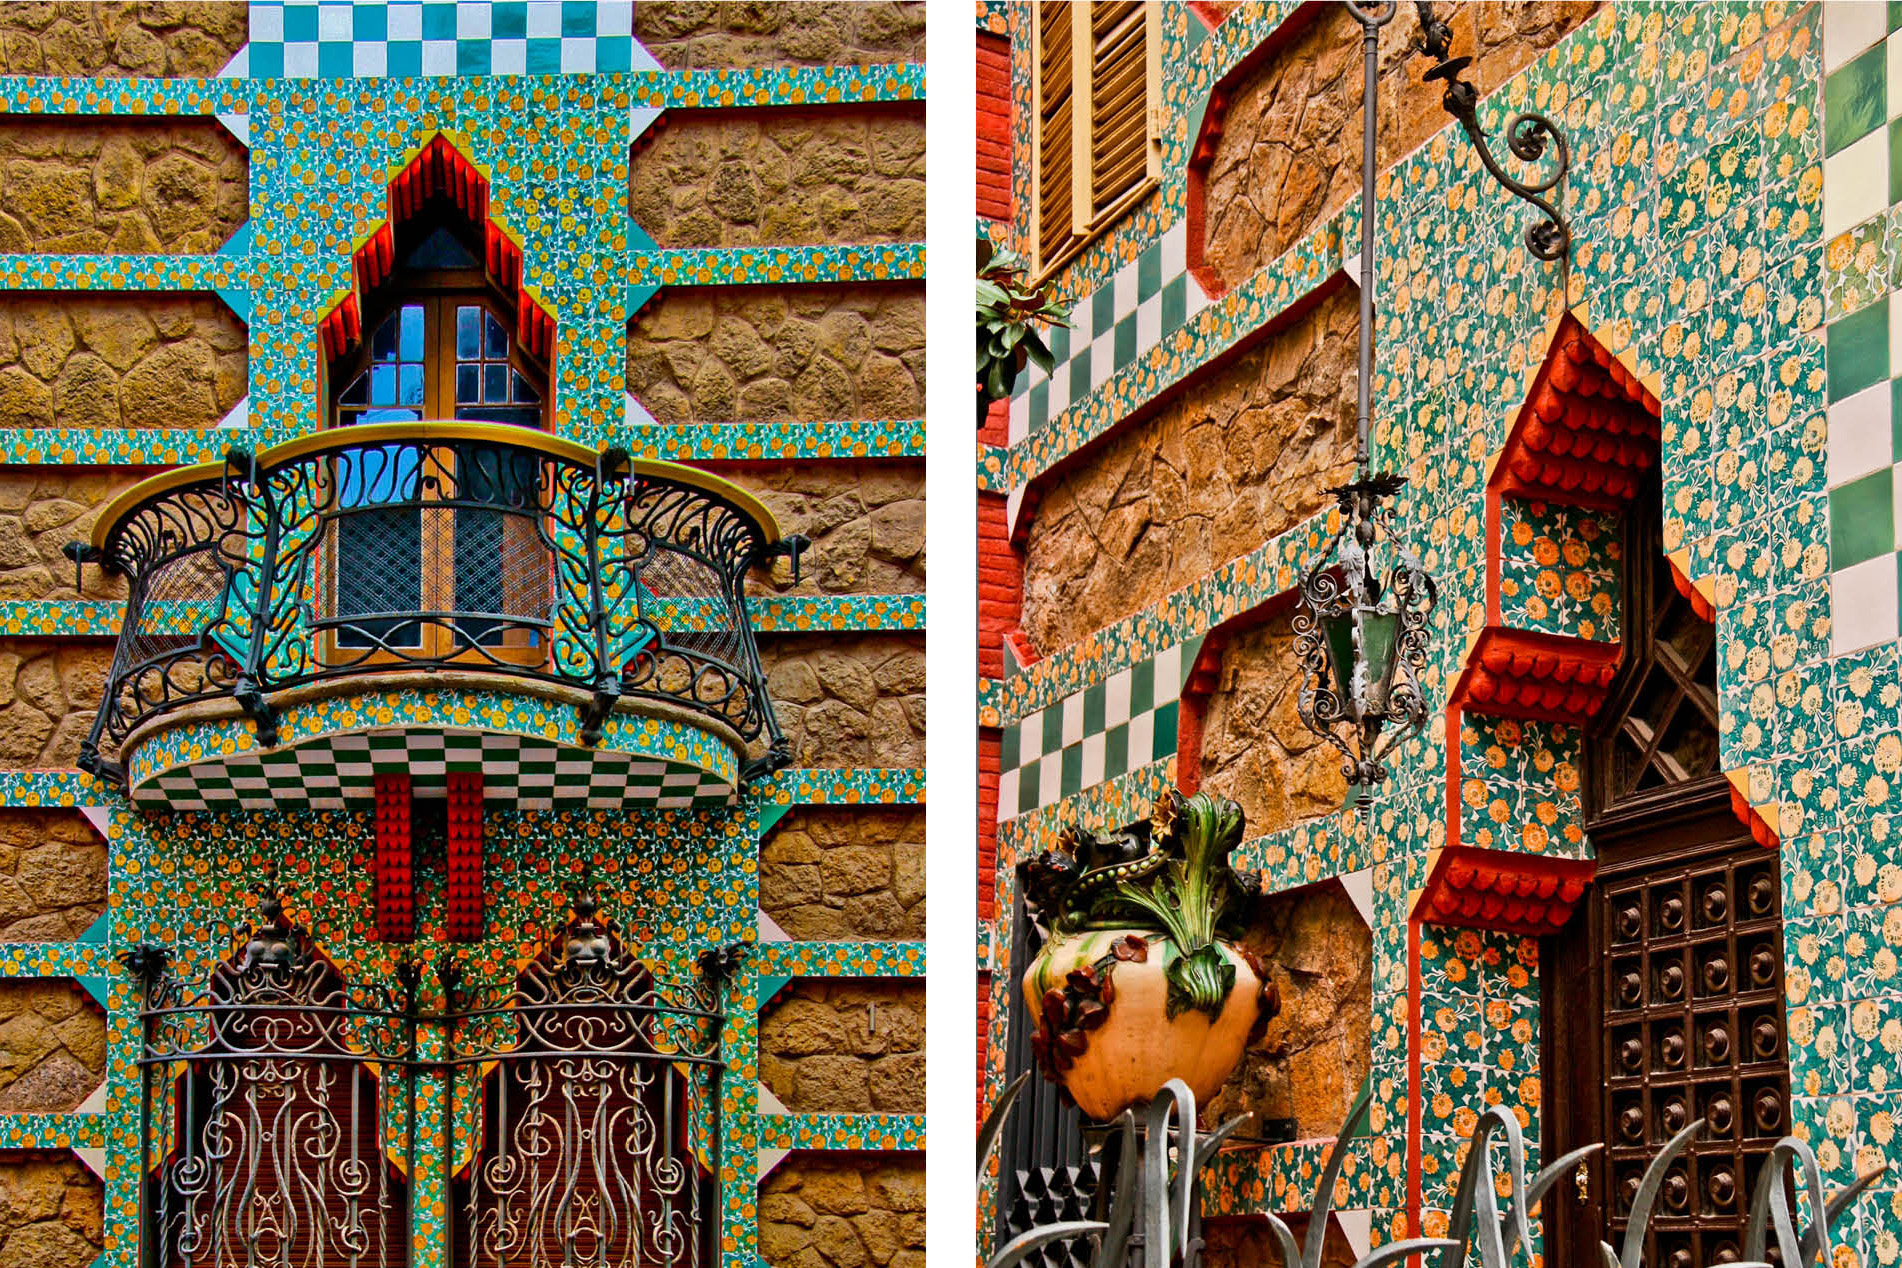 We All Dream Of A Wealthy Patron Gaudi Found His In The Form Eusebi Guell Spanish Architect Won Over By Work At 1878 Paris Worlds Fair